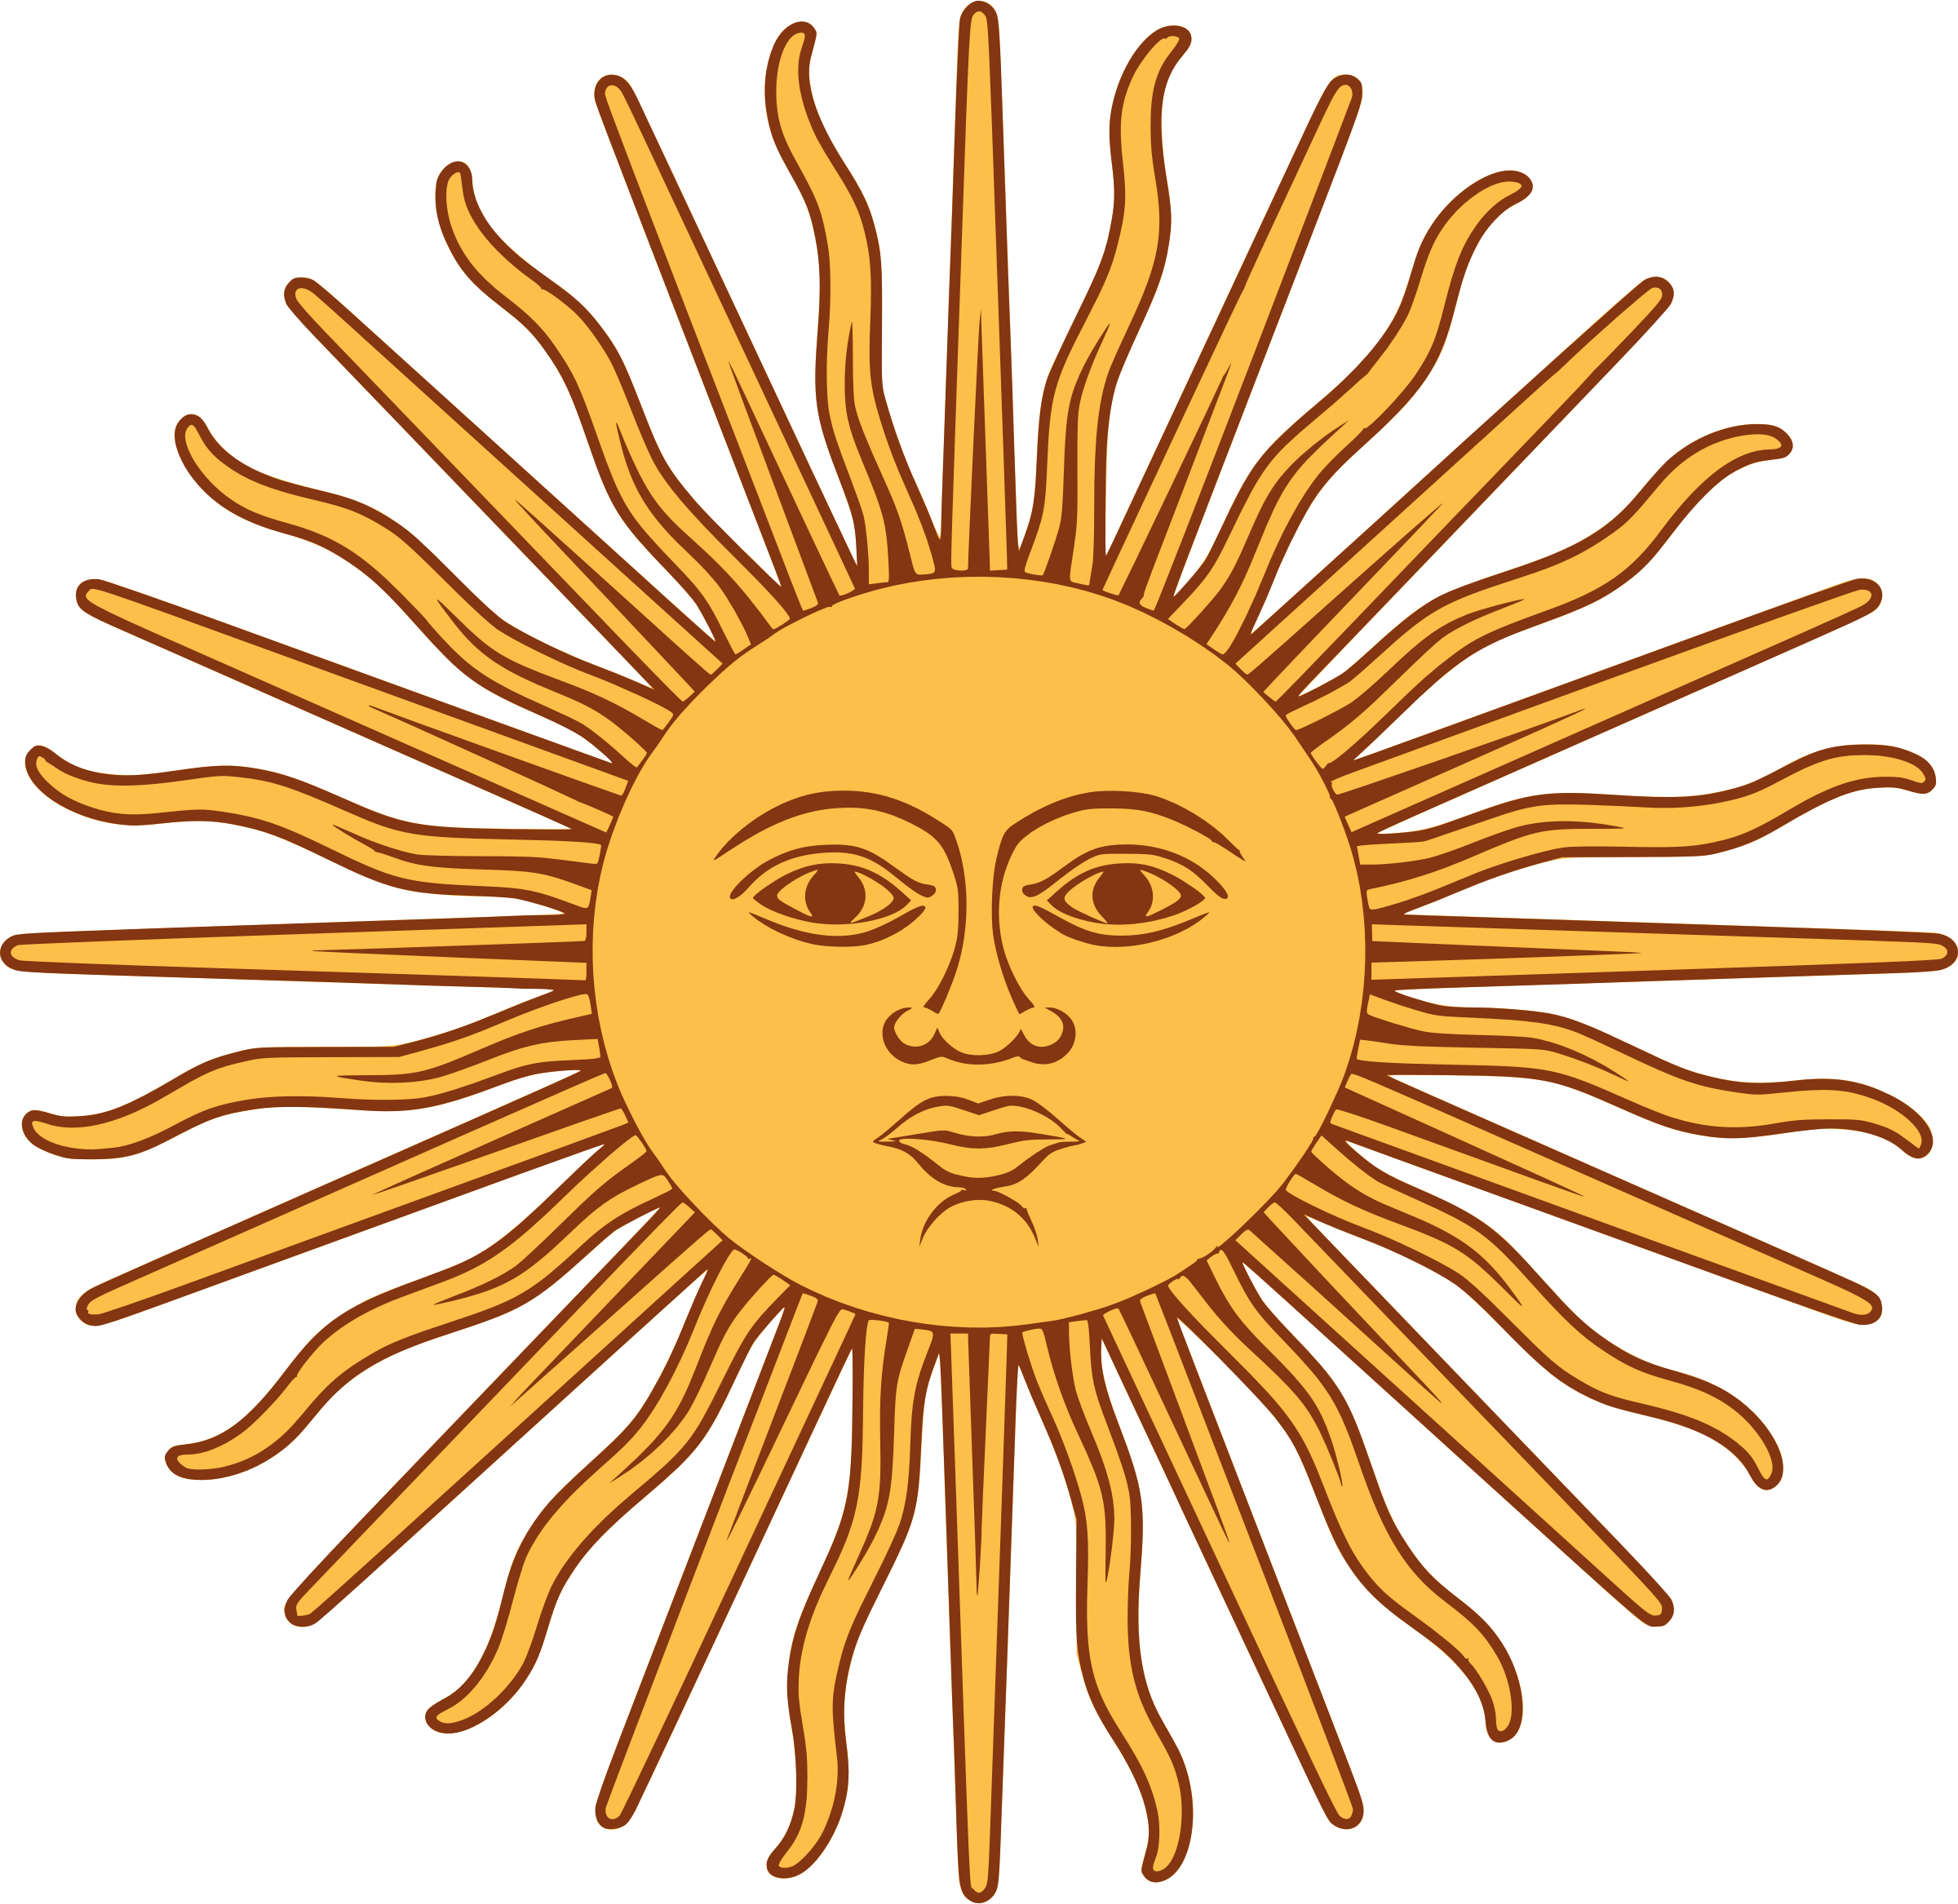 Sol De Mayo Bandera De Argentina By Liftarn The Sun From The Flag Of Sun Art Argentina Flag Public Domain Clip Art